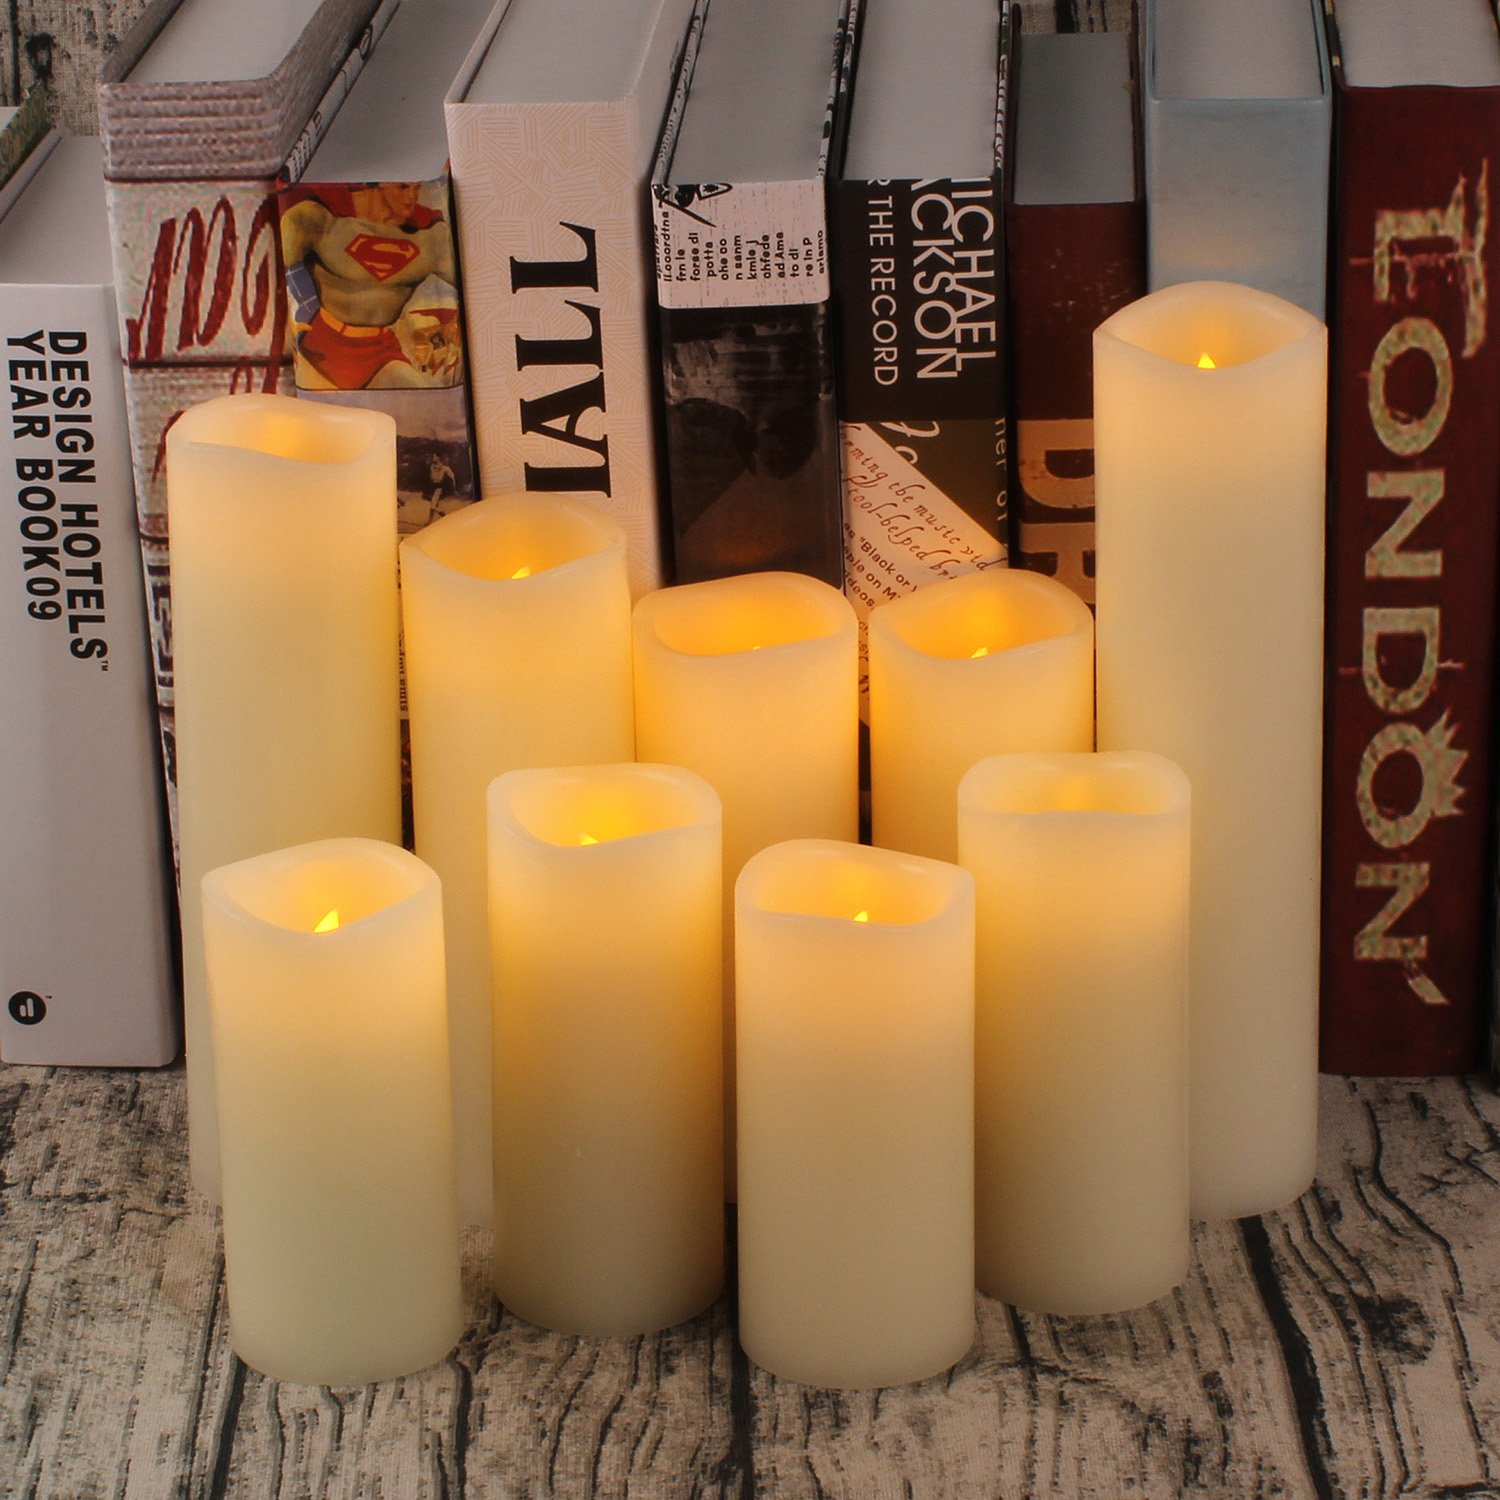 Flameless Candles Battery Operated Candles 4'' 5'' 6'' 7'' 8'' 9'' Set of 9 Ivory Real Wax Pillar LED Candles with 10-key Remote and Cycling 24 Hours Timer